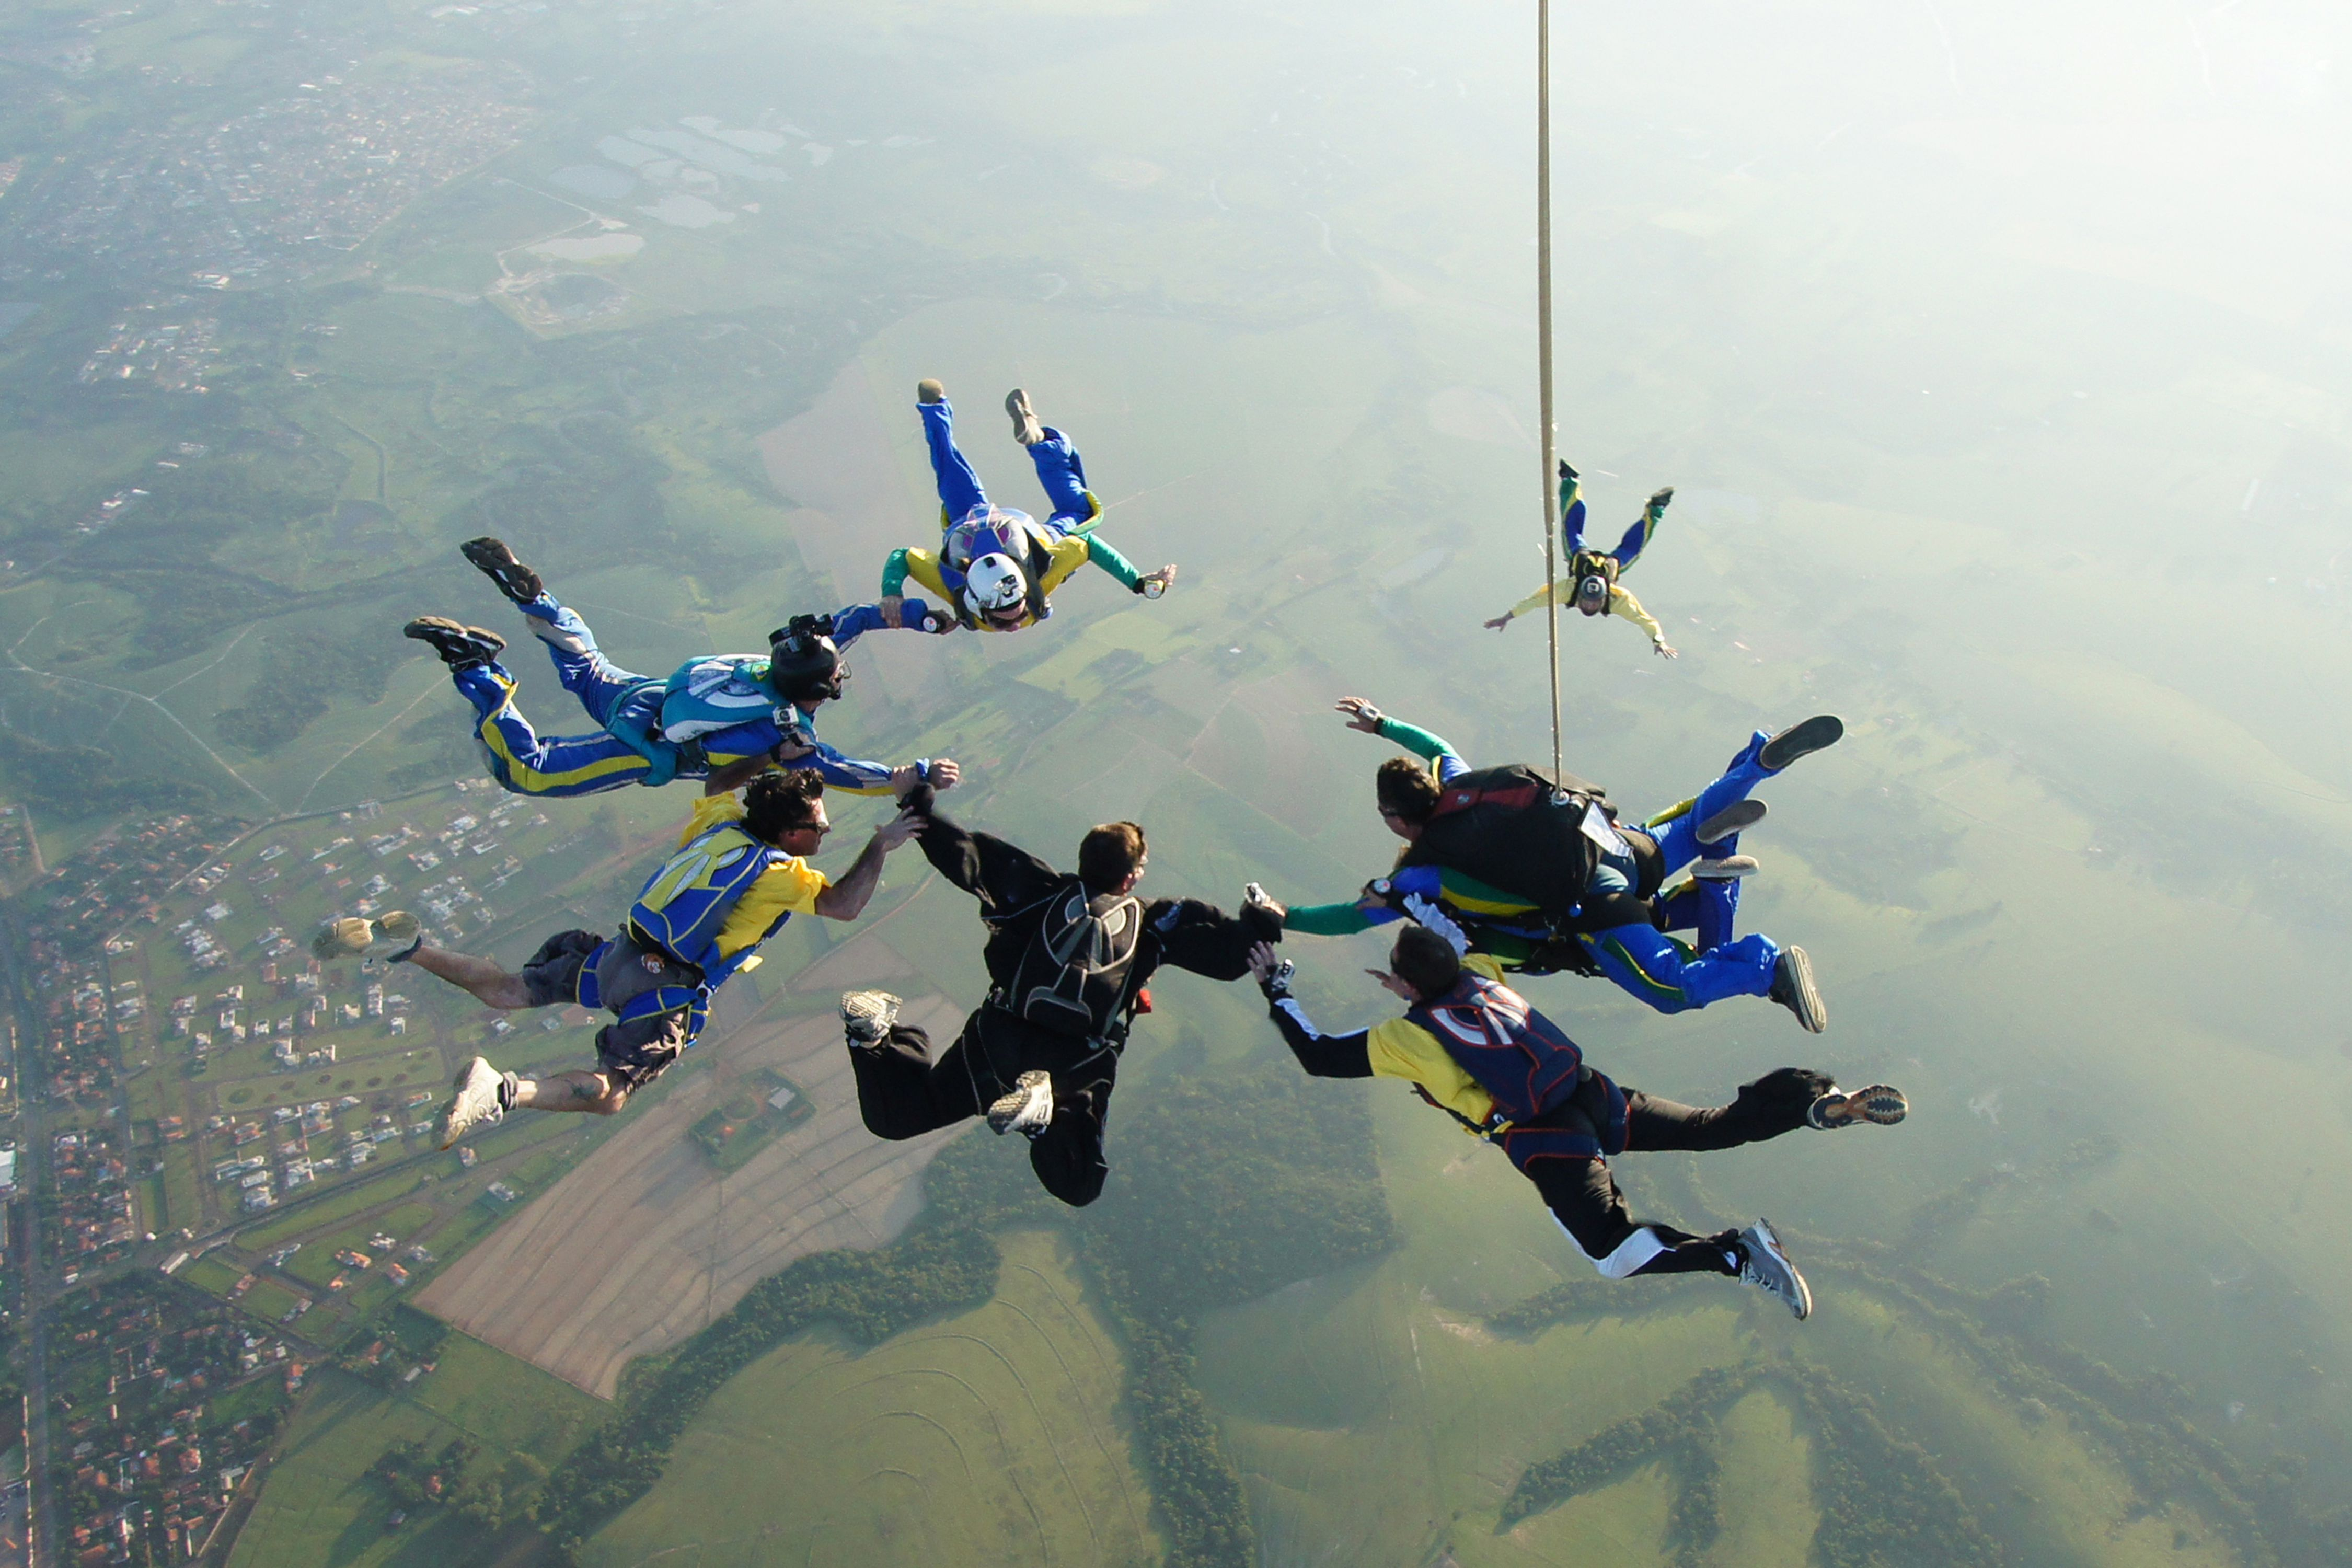 A group skydiving over Sao Paulo